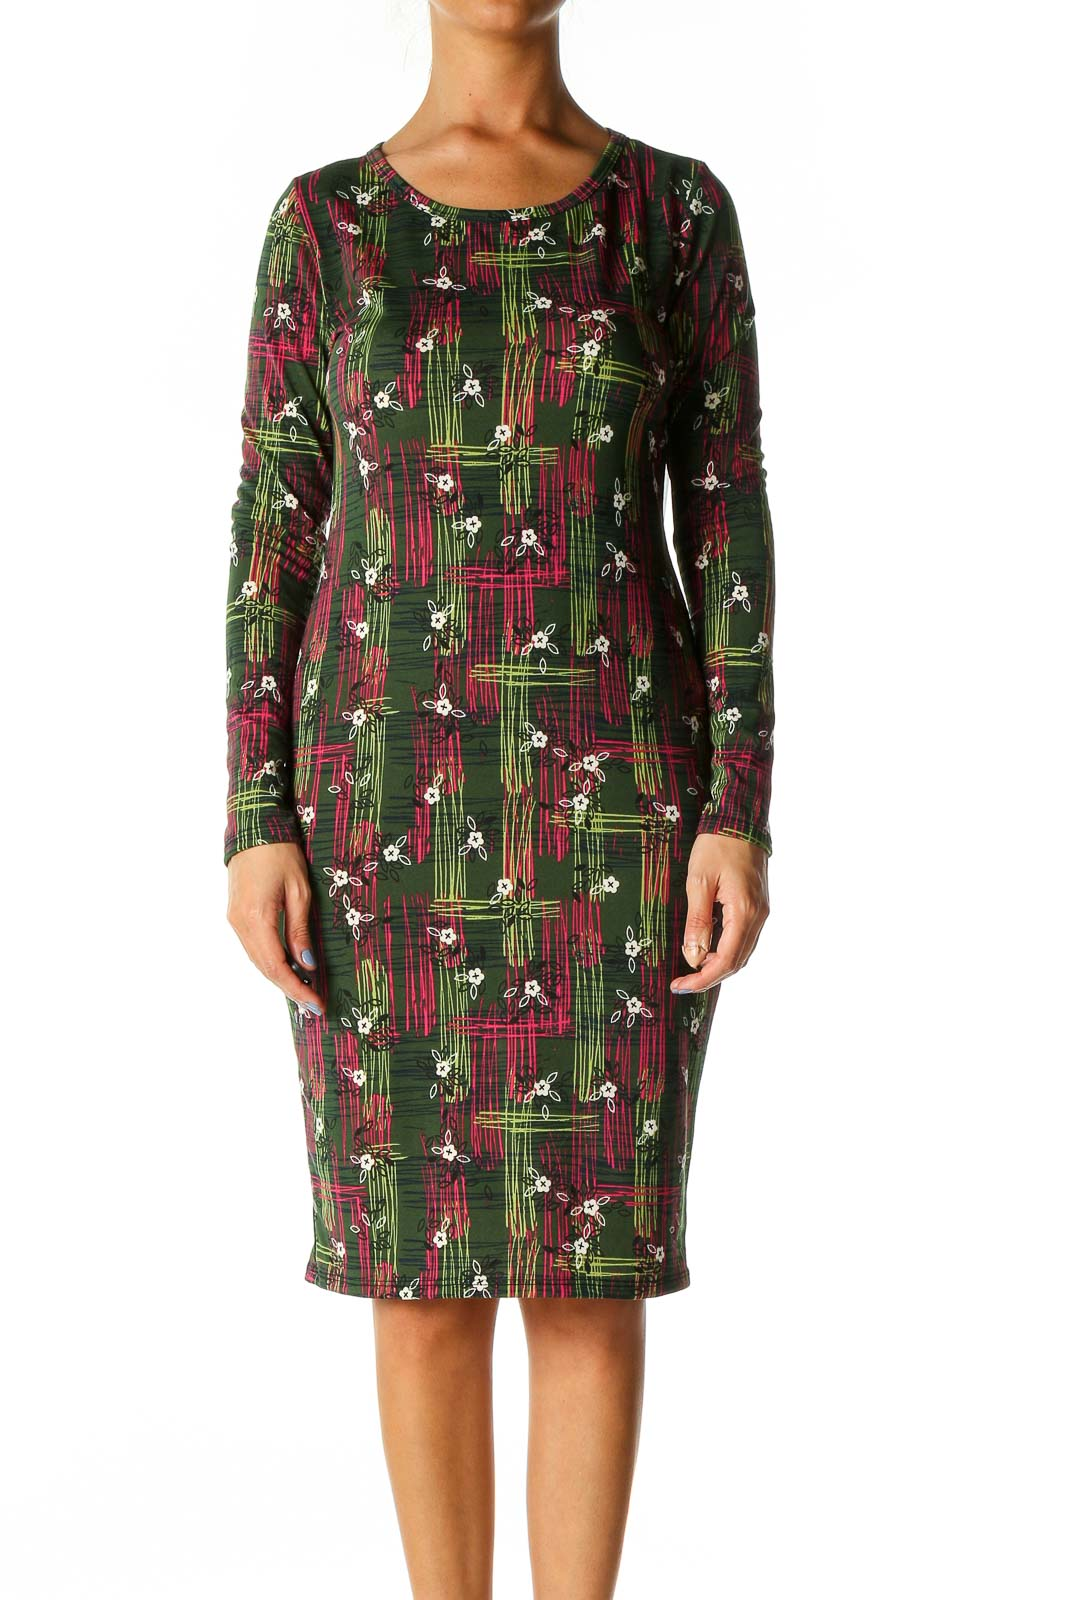 Green Graphic Print Casual Shift Dress Front